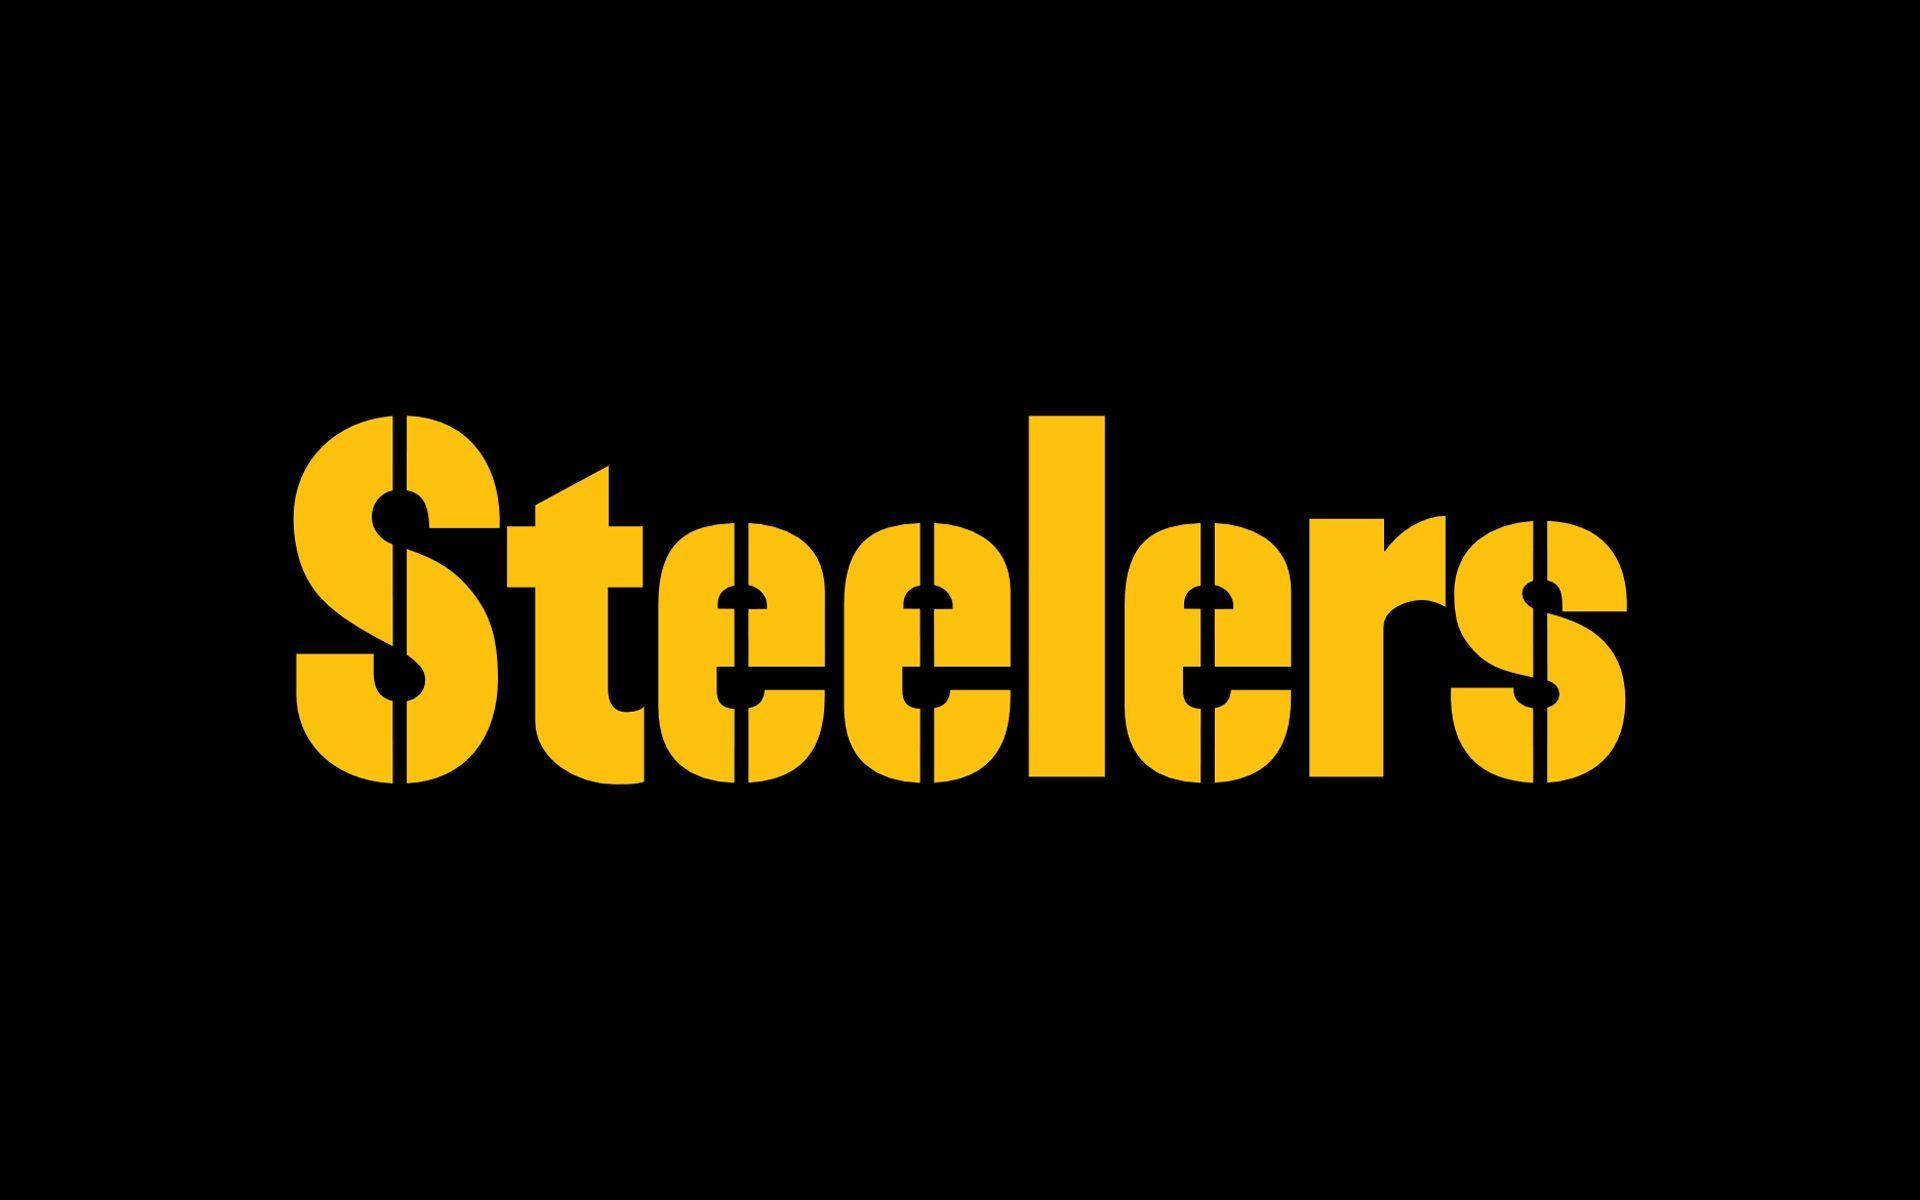 1920x1200 - Steelers Desktop 52